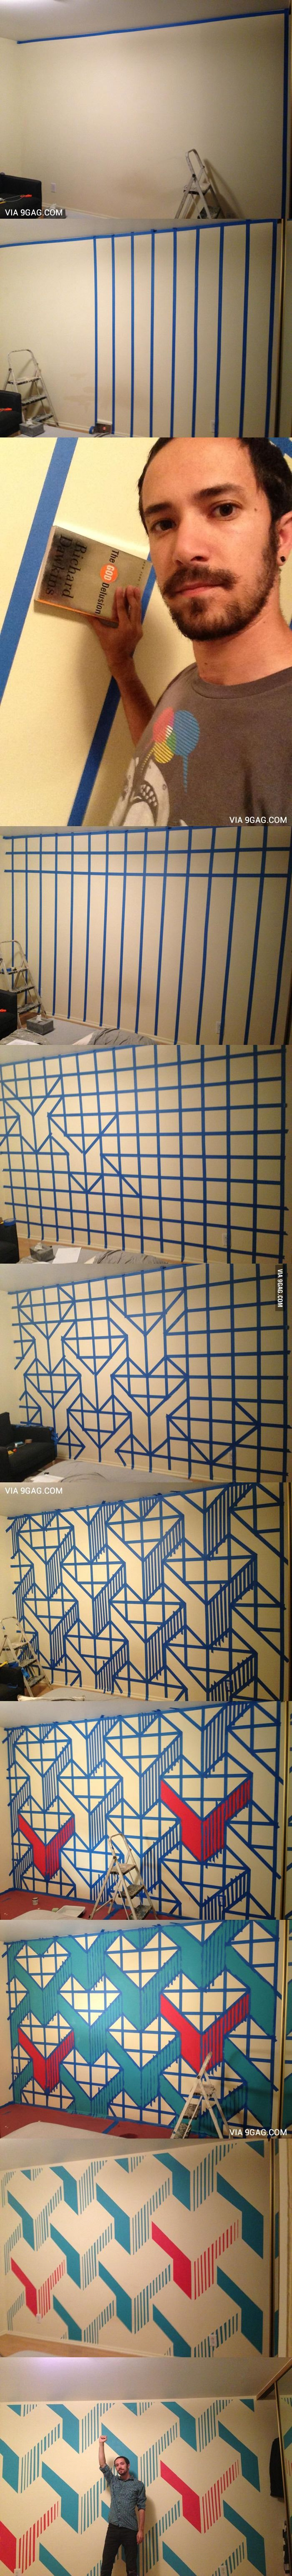 I painted a design on my wall and it came out awesome! (nada que um humano normal tenha a paciência de refazer. )